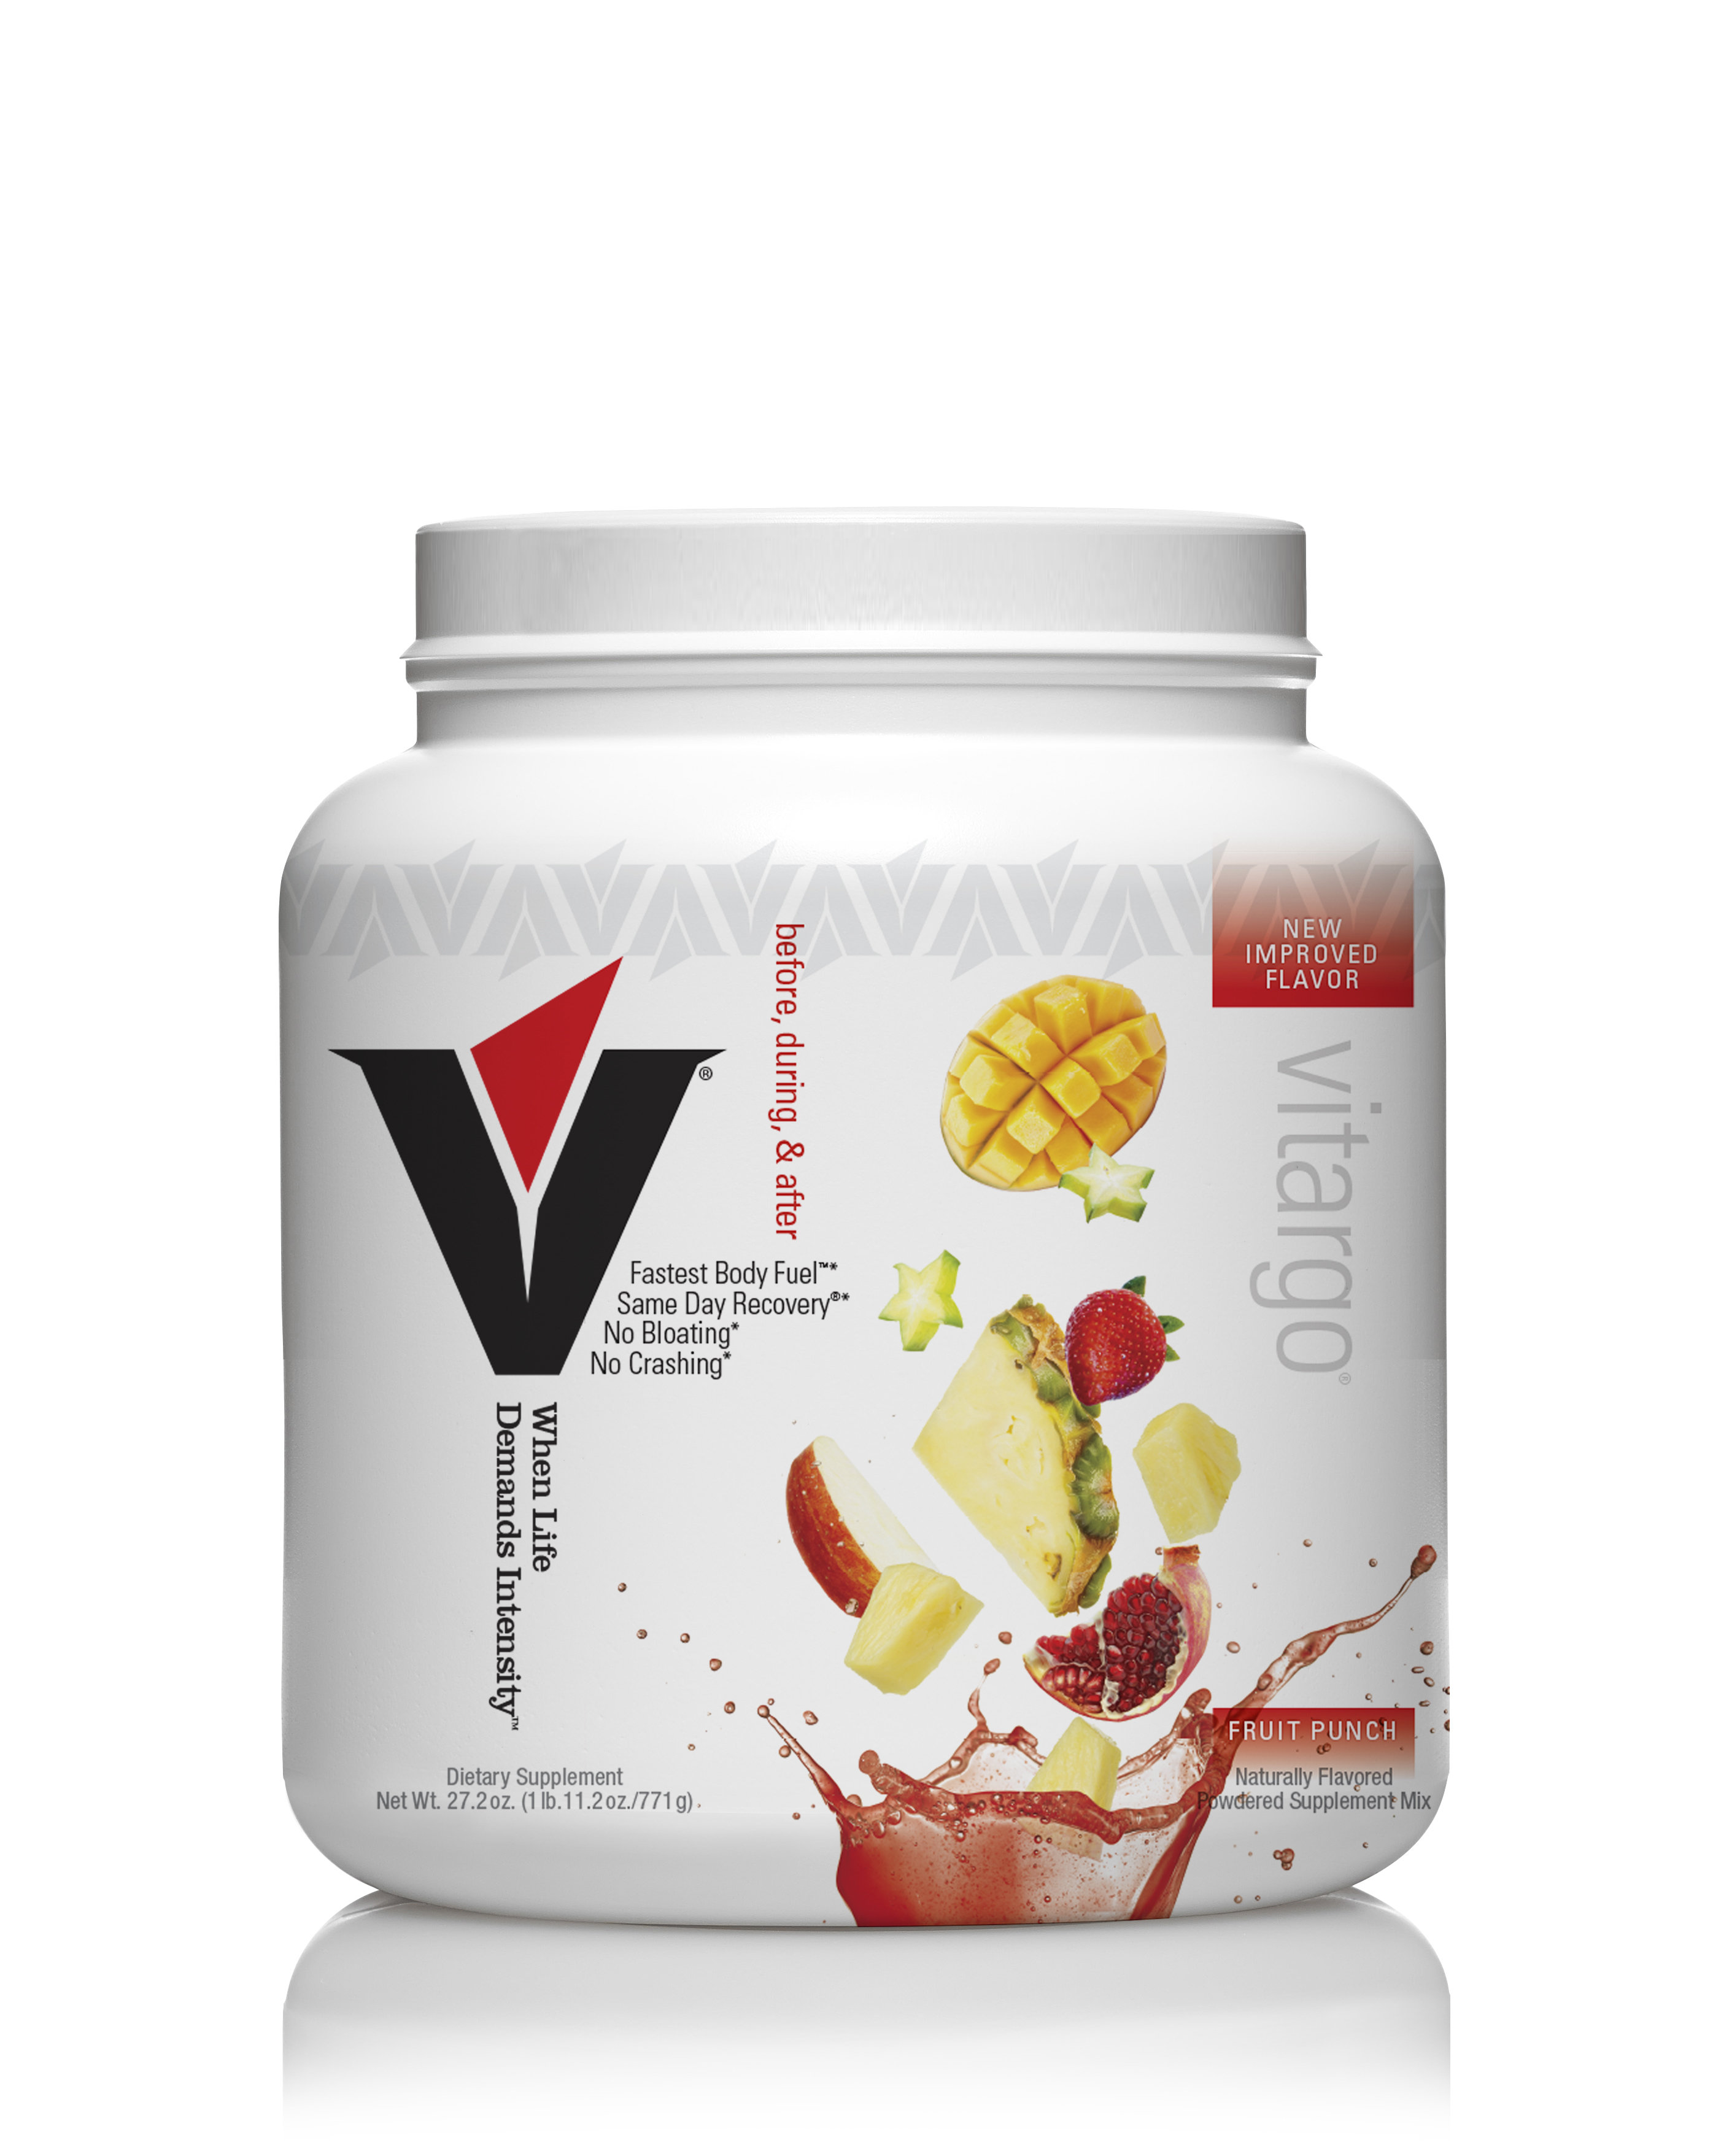 Vitargo Fruit Punch 20 Scoop 20tfrtvit